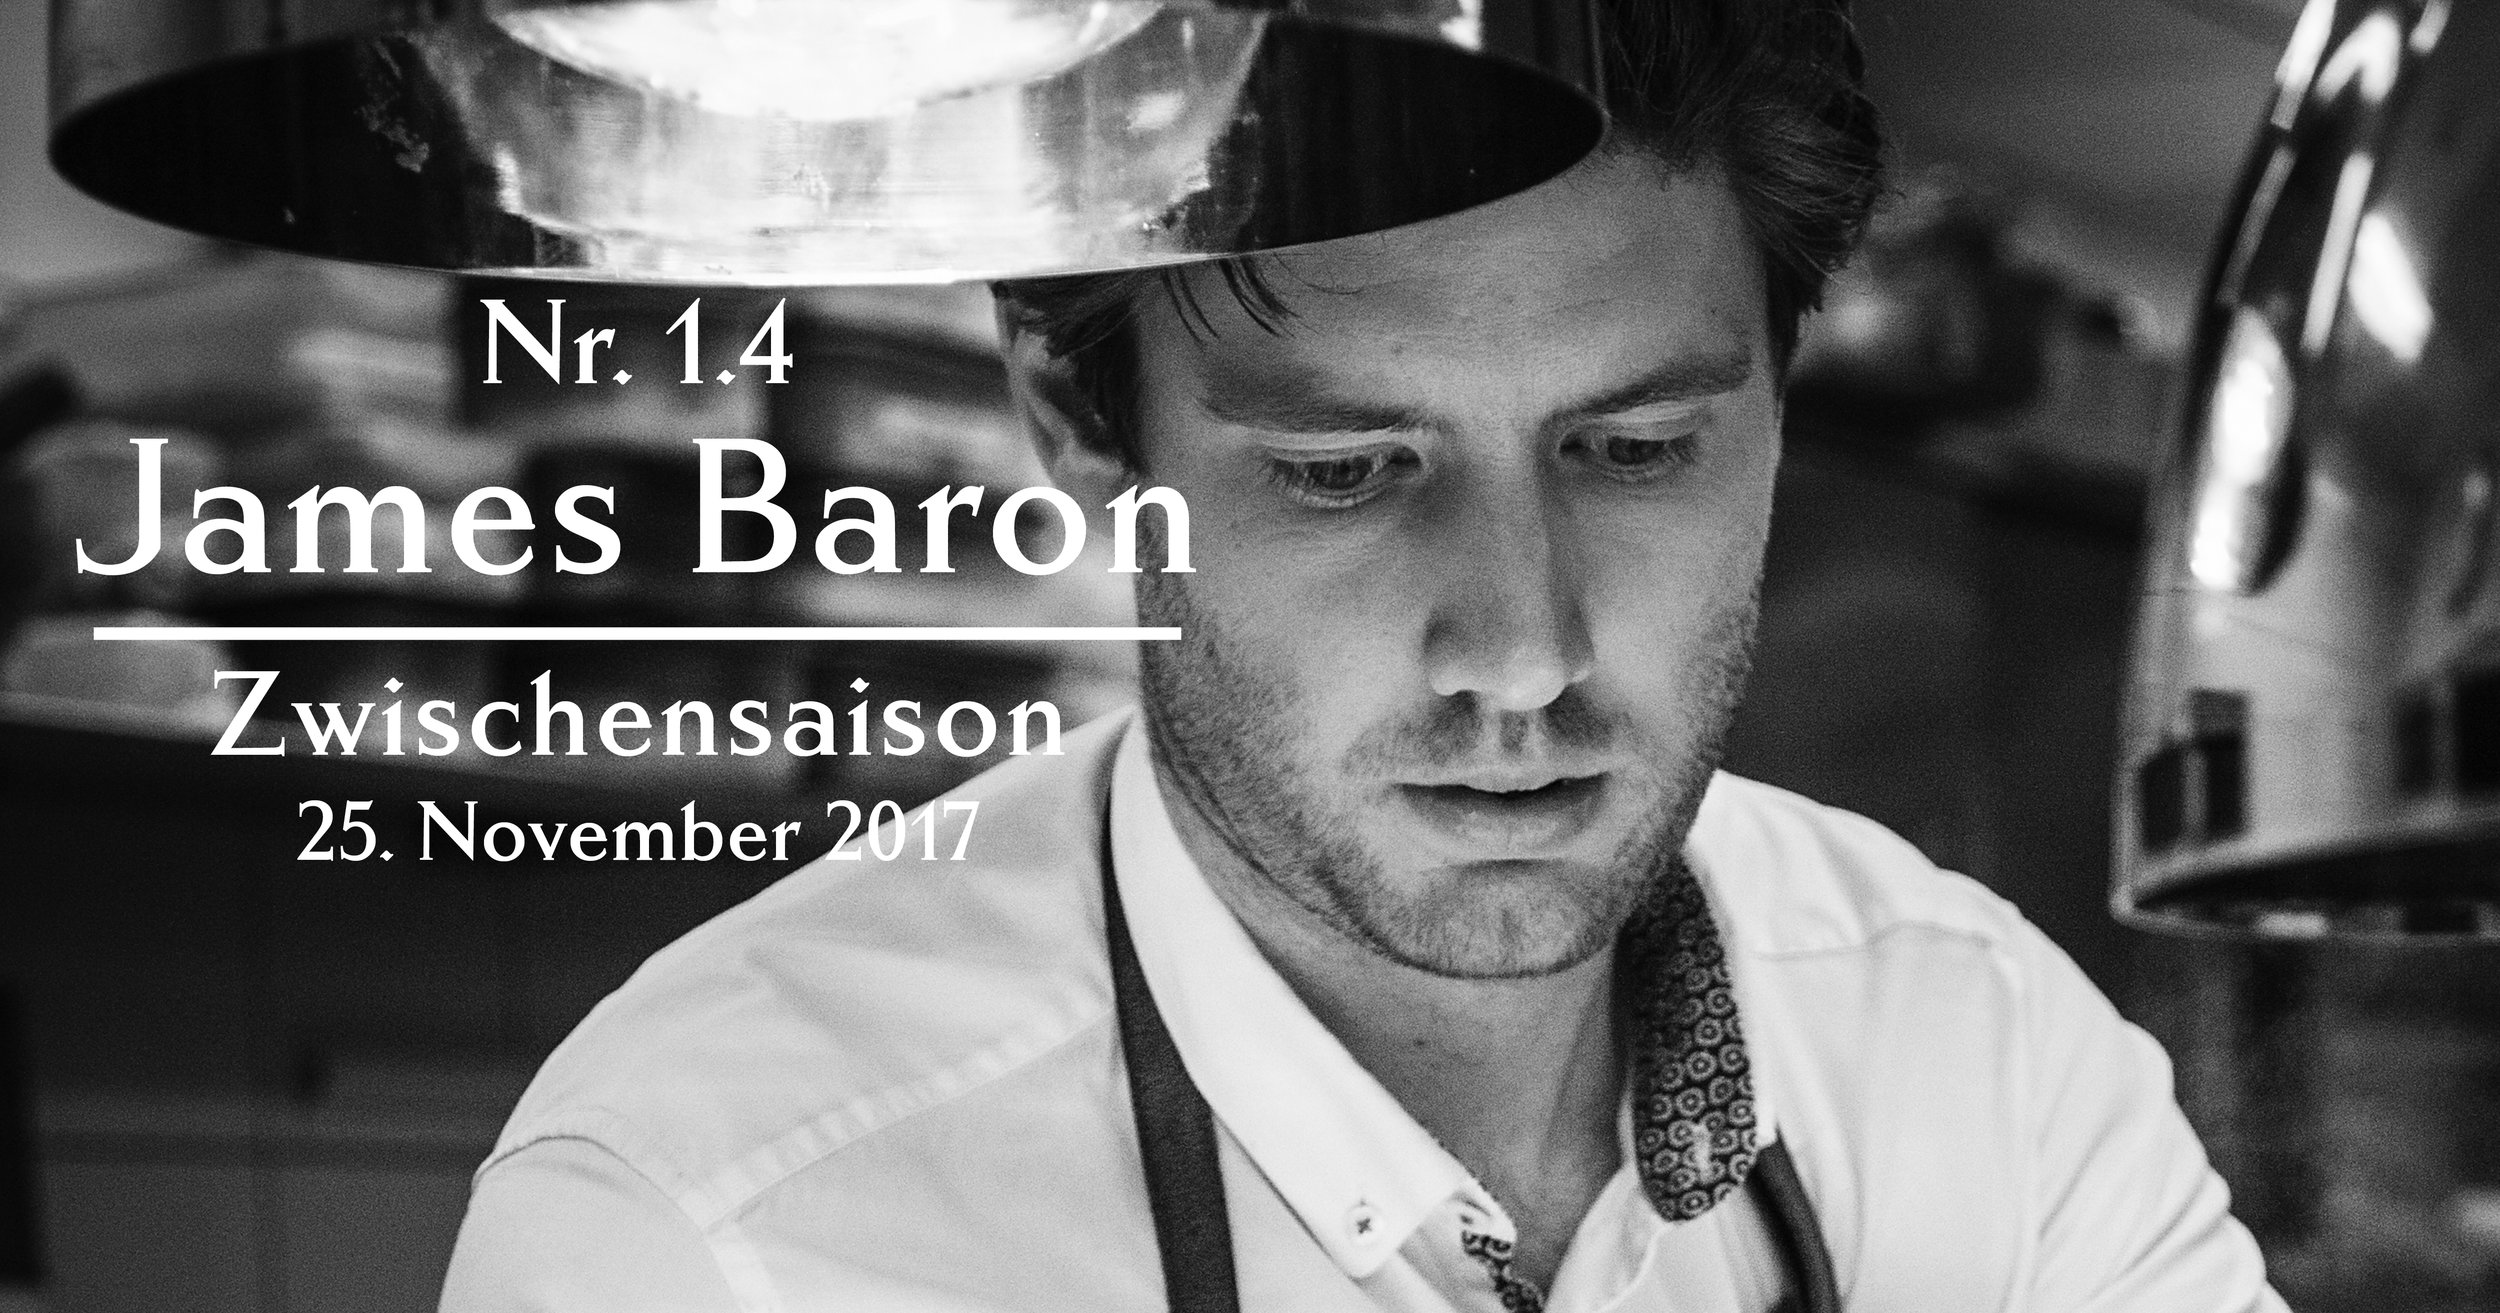 James Baron-Zwischensaison-Websitebanner.jpg